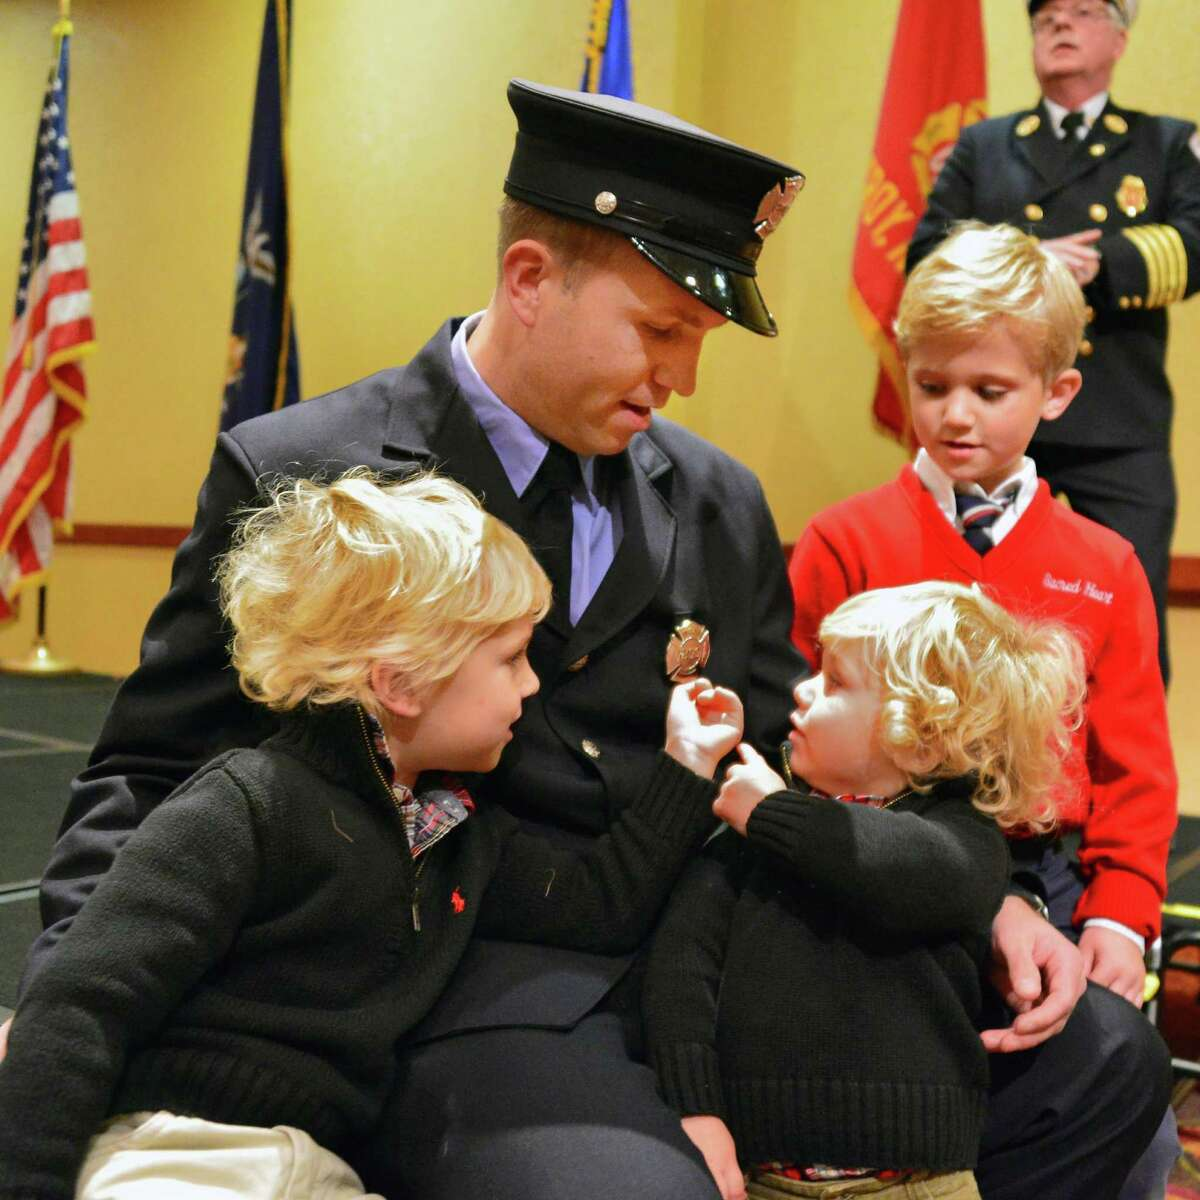 Troy firefighter Kevin Kilgallon with sons, from left, Braeden, 4, Max, 1, and Blake 6, before the start of a promotion ceremony where Kevin was sworn in as a lieutenant Tuesday, Nov. 19, 2013, in Troy, N.Y. (John Carl D'Annibale / Times Union)